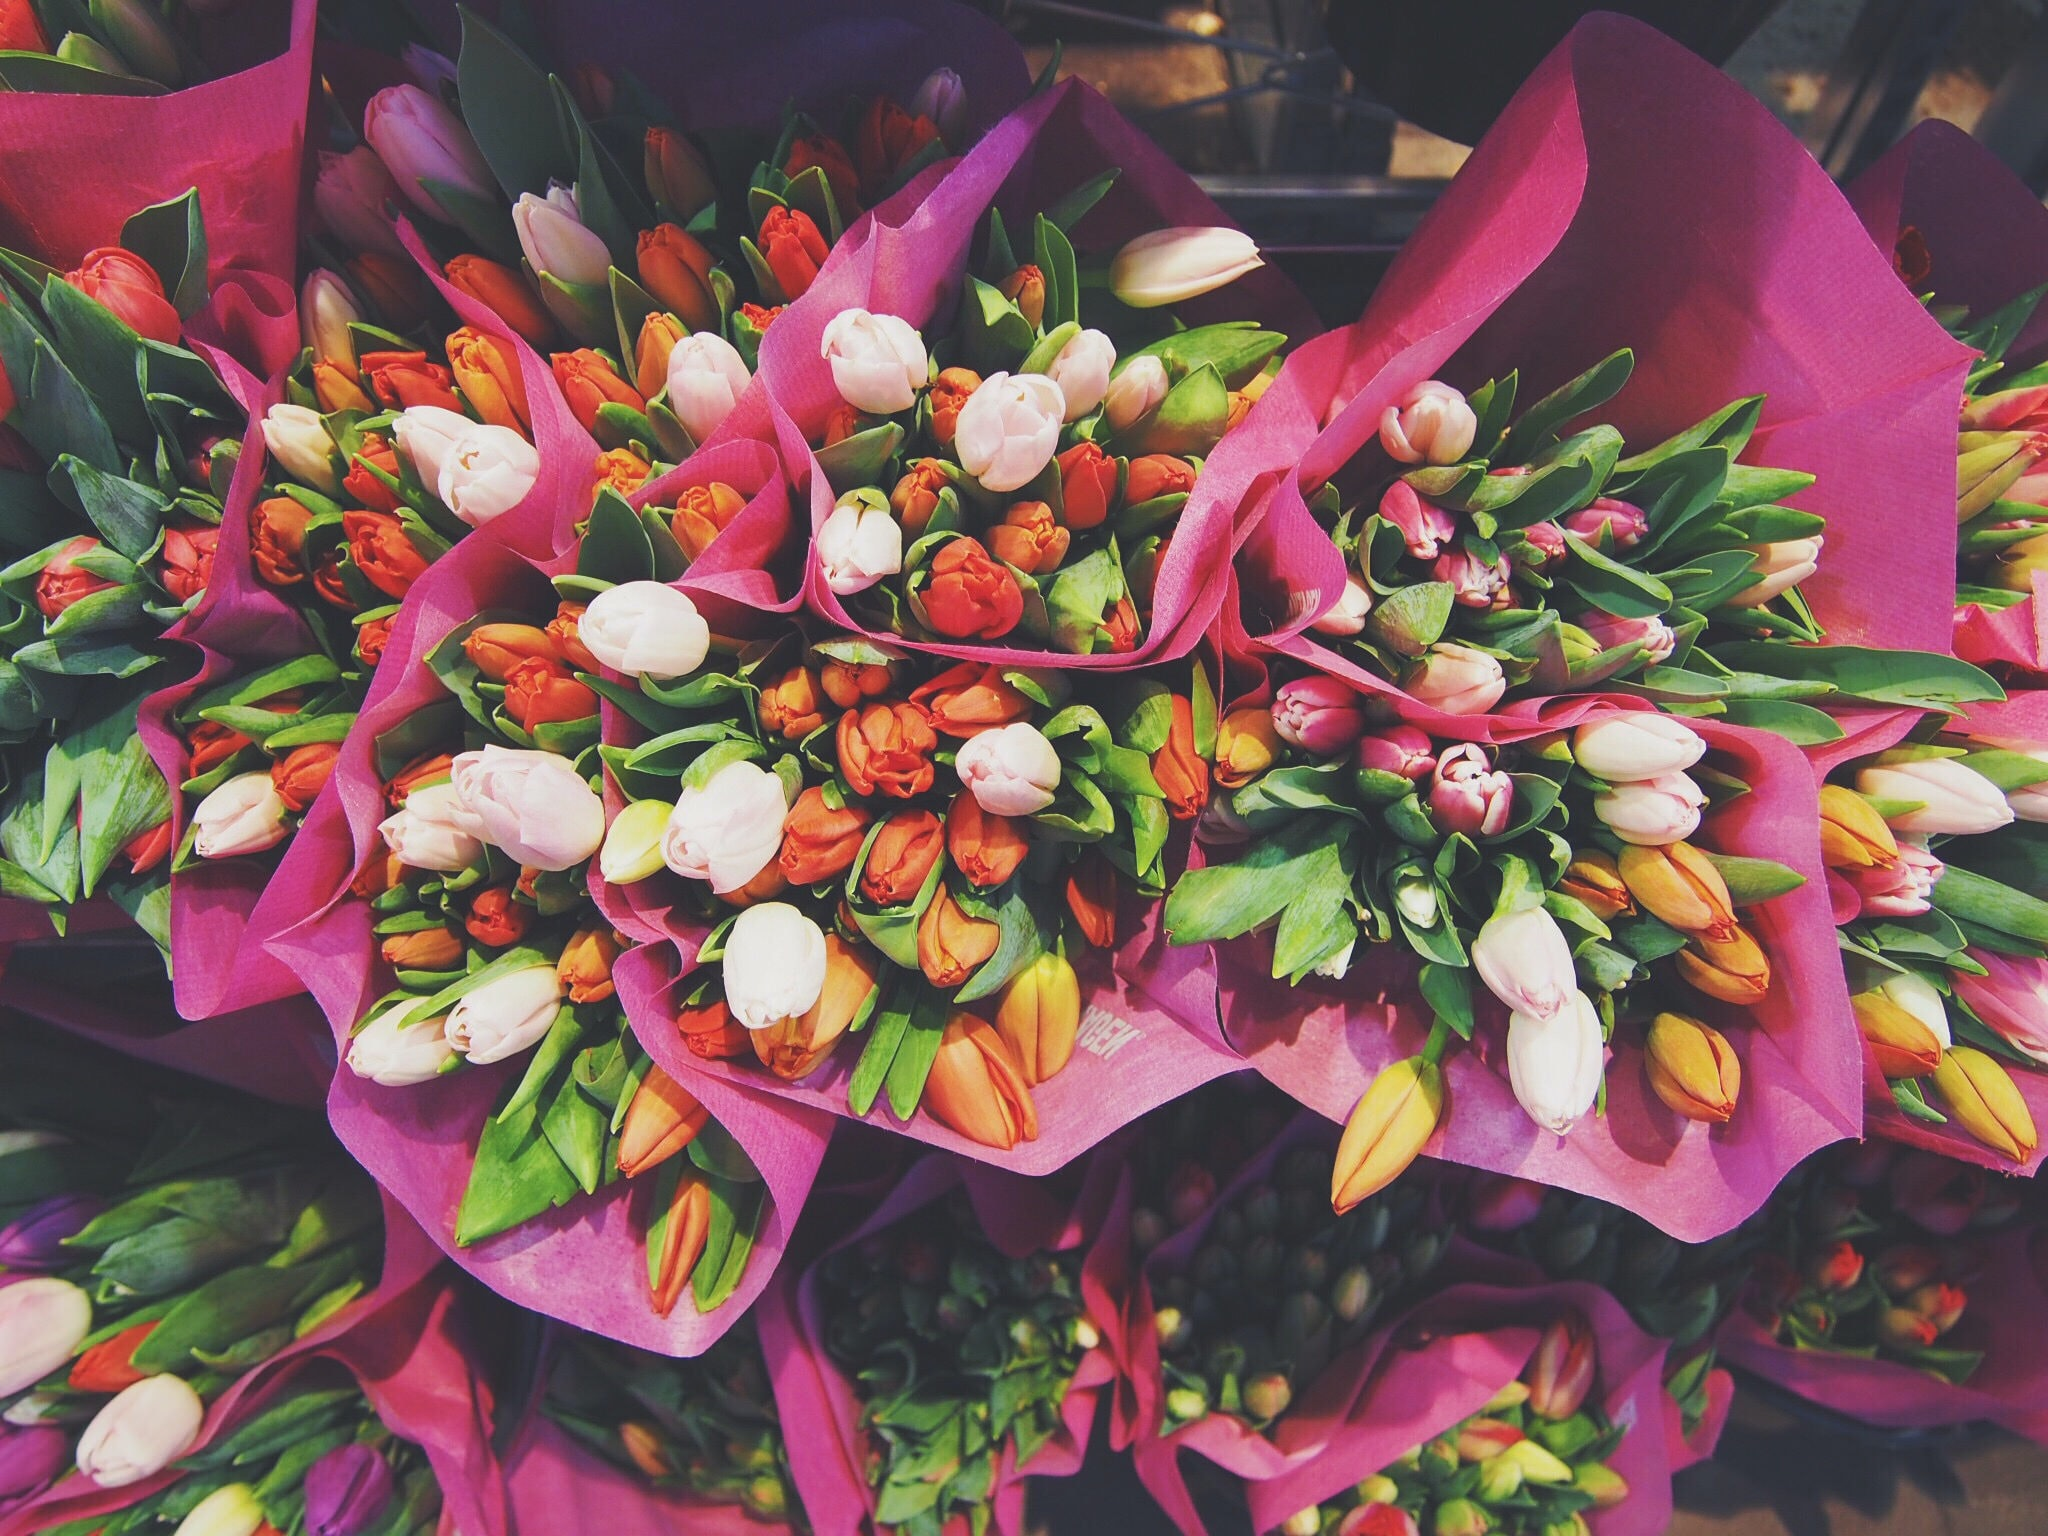 red, yellow, and white flowers bouquets